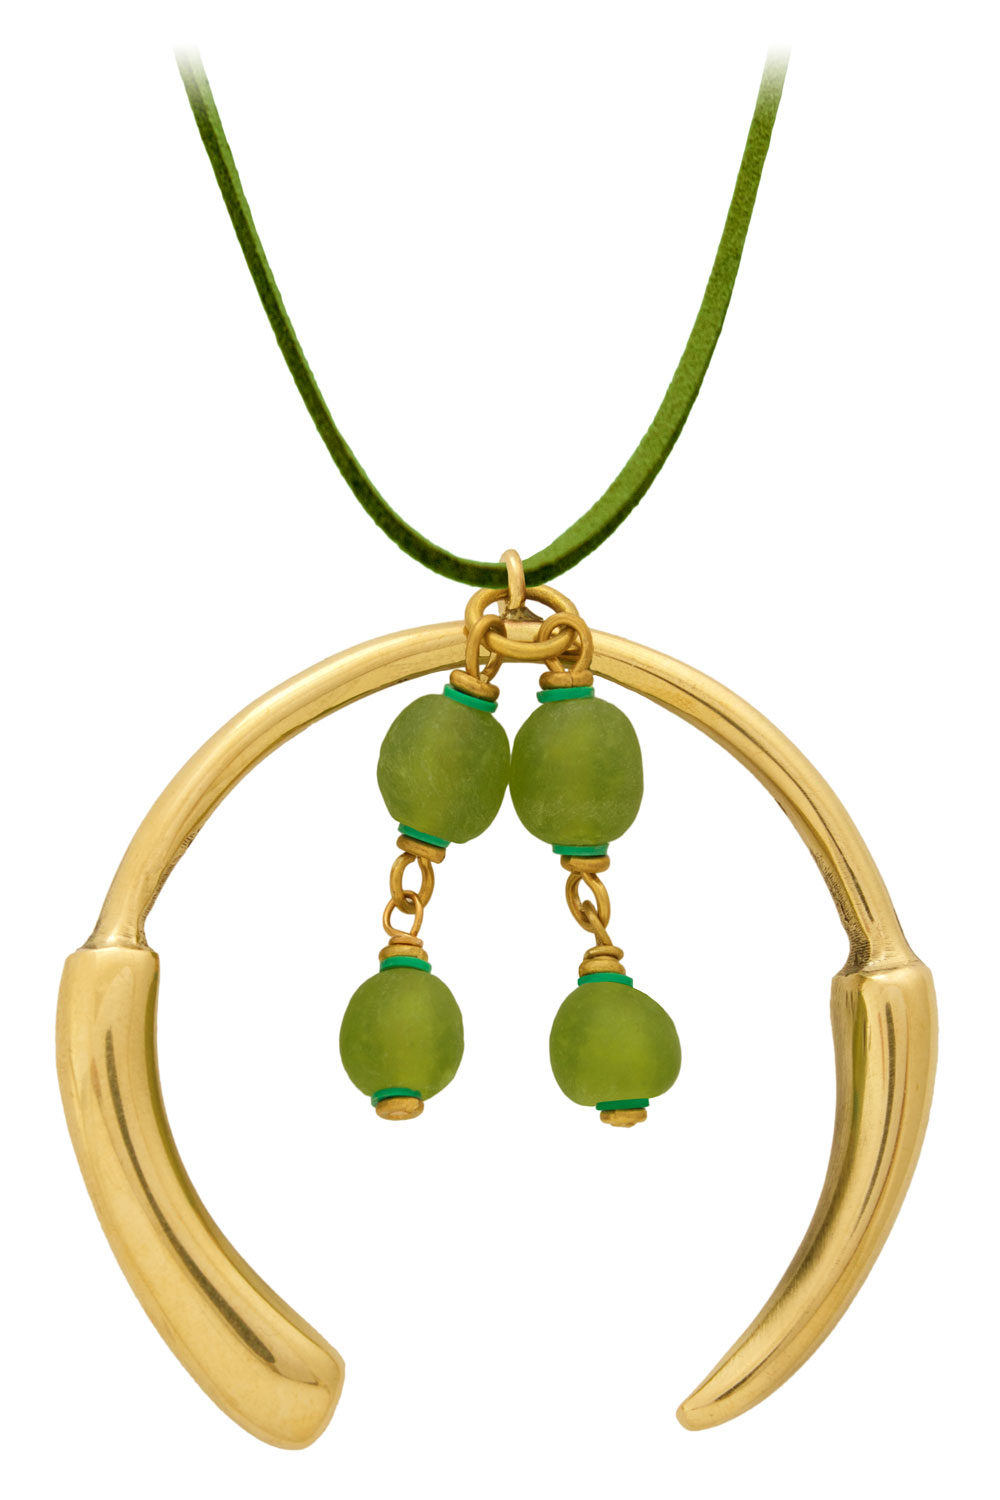 Kijani Green Aza Grande Necklace Suede Cord by SHIKHAZURI